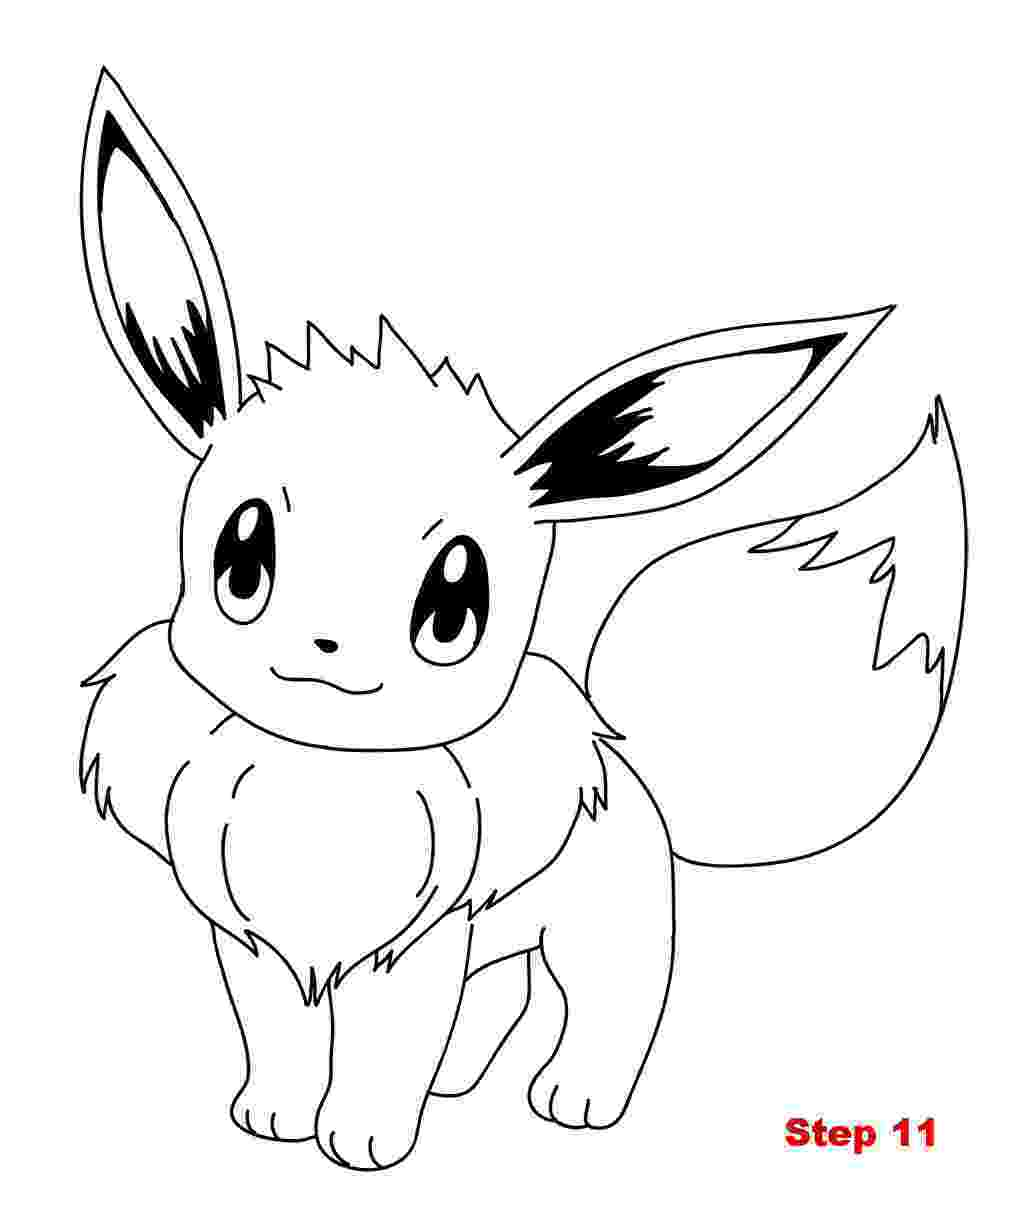 eevee coloring pages eevee coloring pages to download and print for free coloring eevee pages